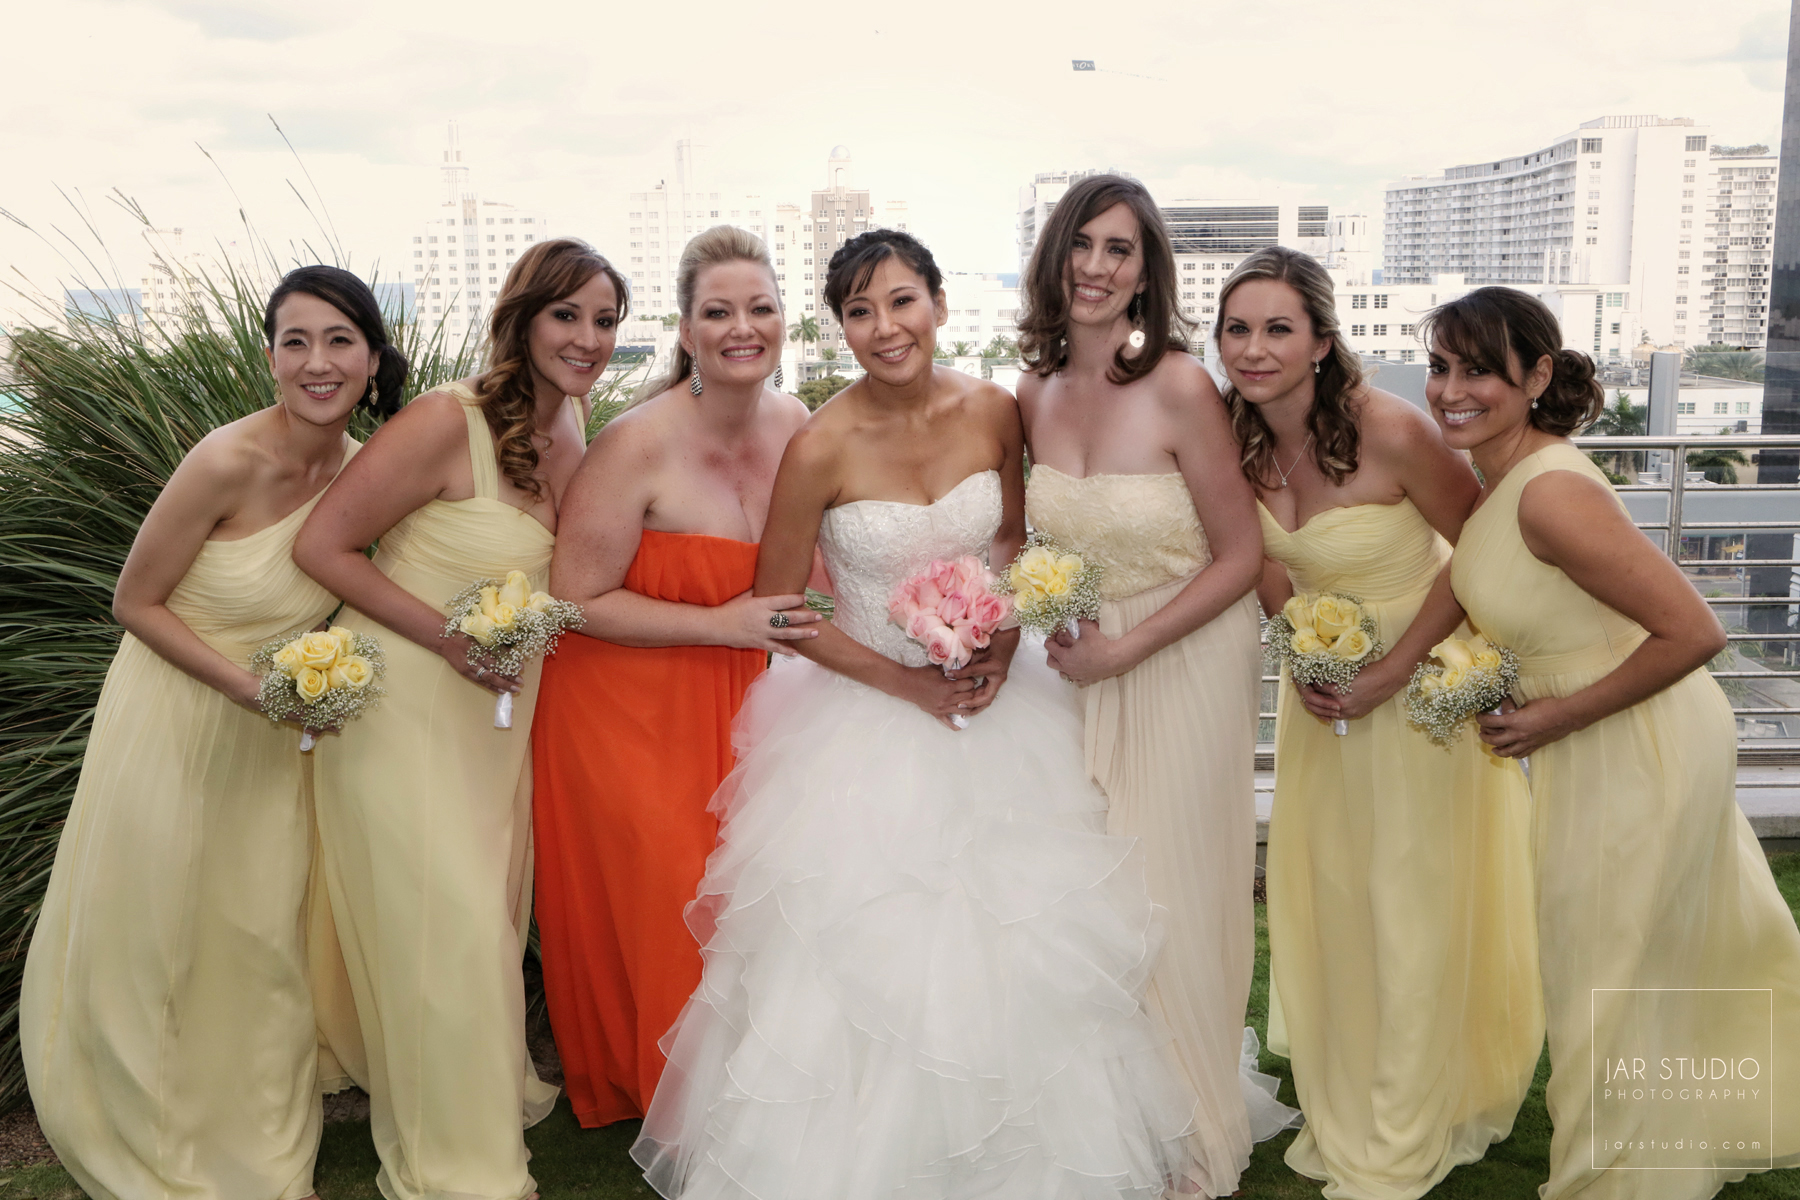 04-bridesmaids-yellow-dresses-jarstudio-photography.jpg